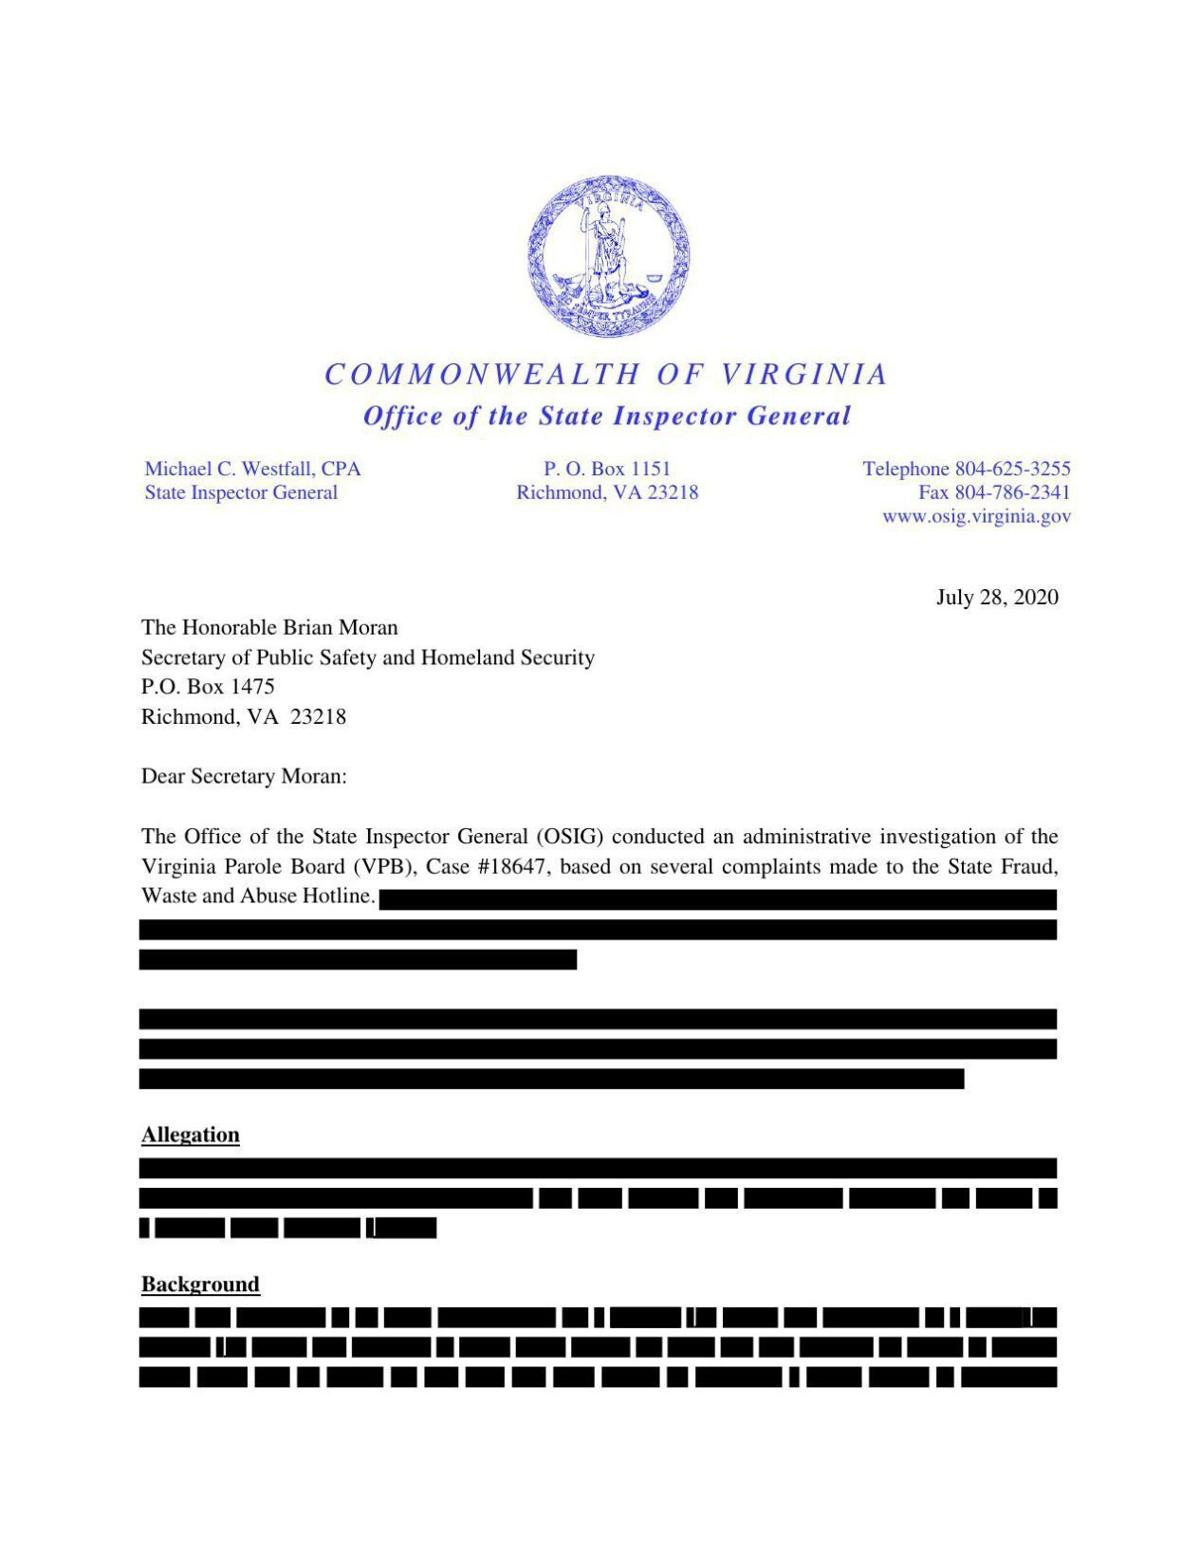 The State Office of Inspector General's report